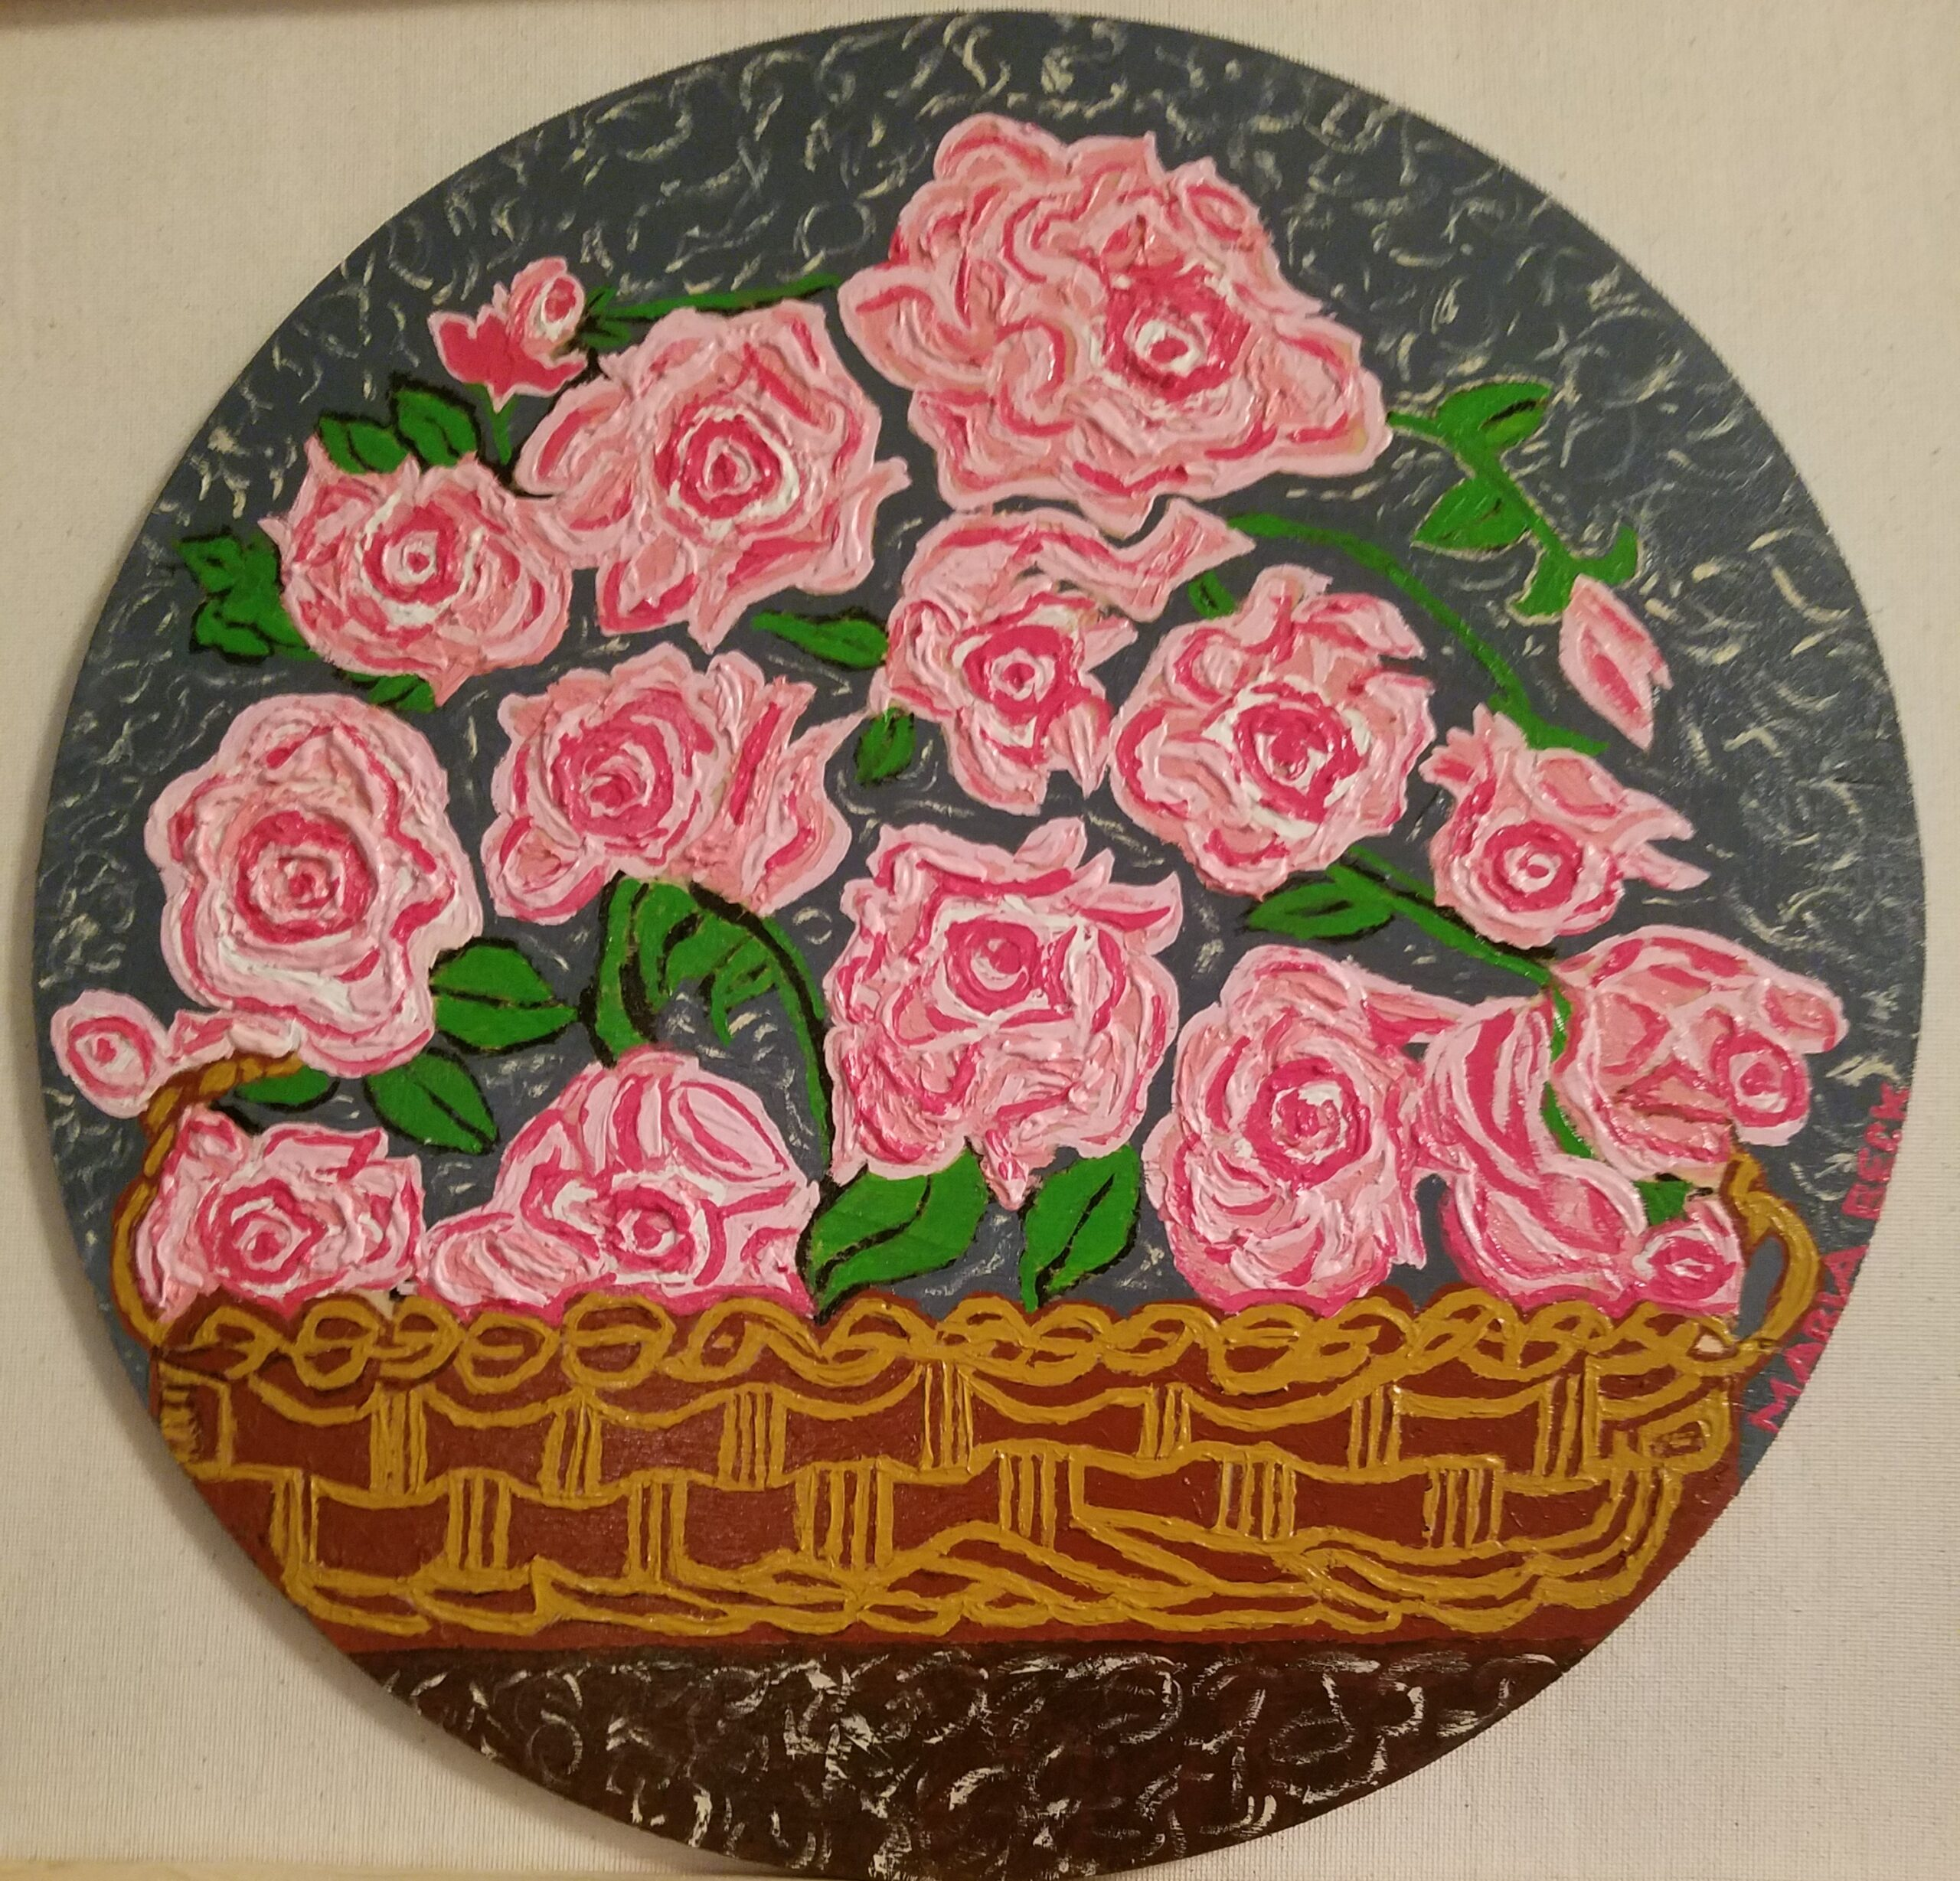 Roses in the Round